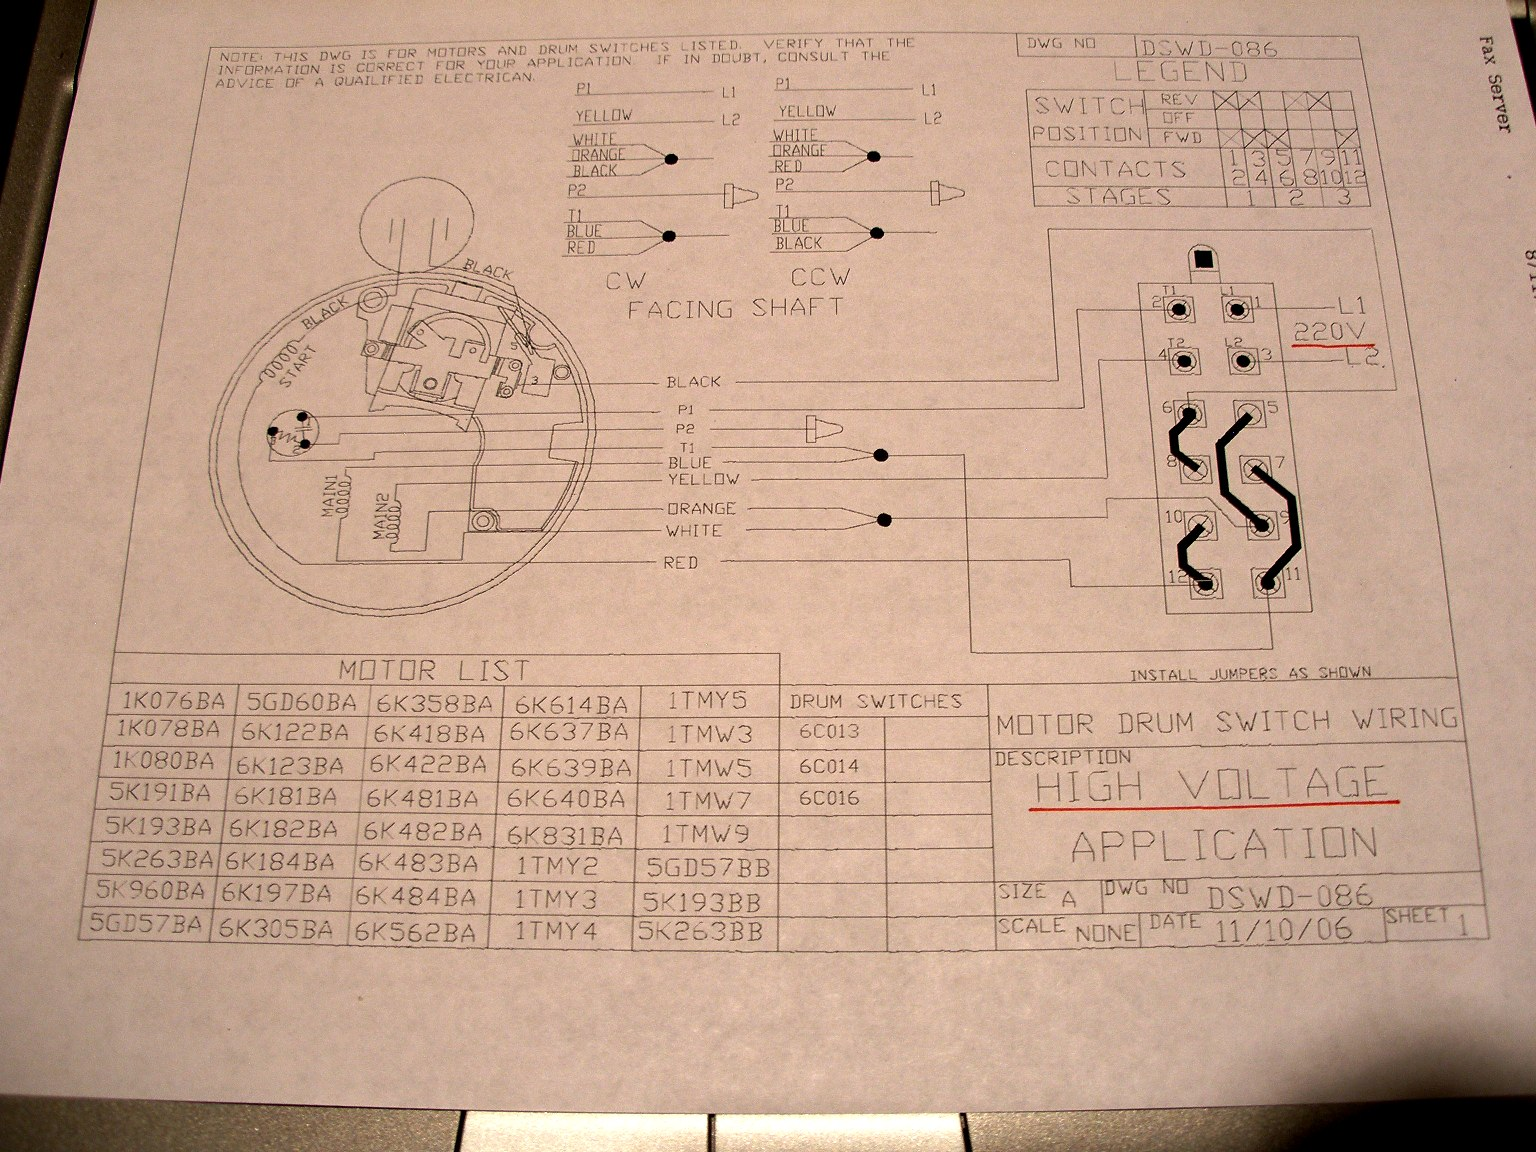 2011 08 11_193044_grainger_dayton_high_voltage_diagram the motor on my boat lift quit it was a ao motor, open ended and boat lift wiring diagram at crackthecode.co